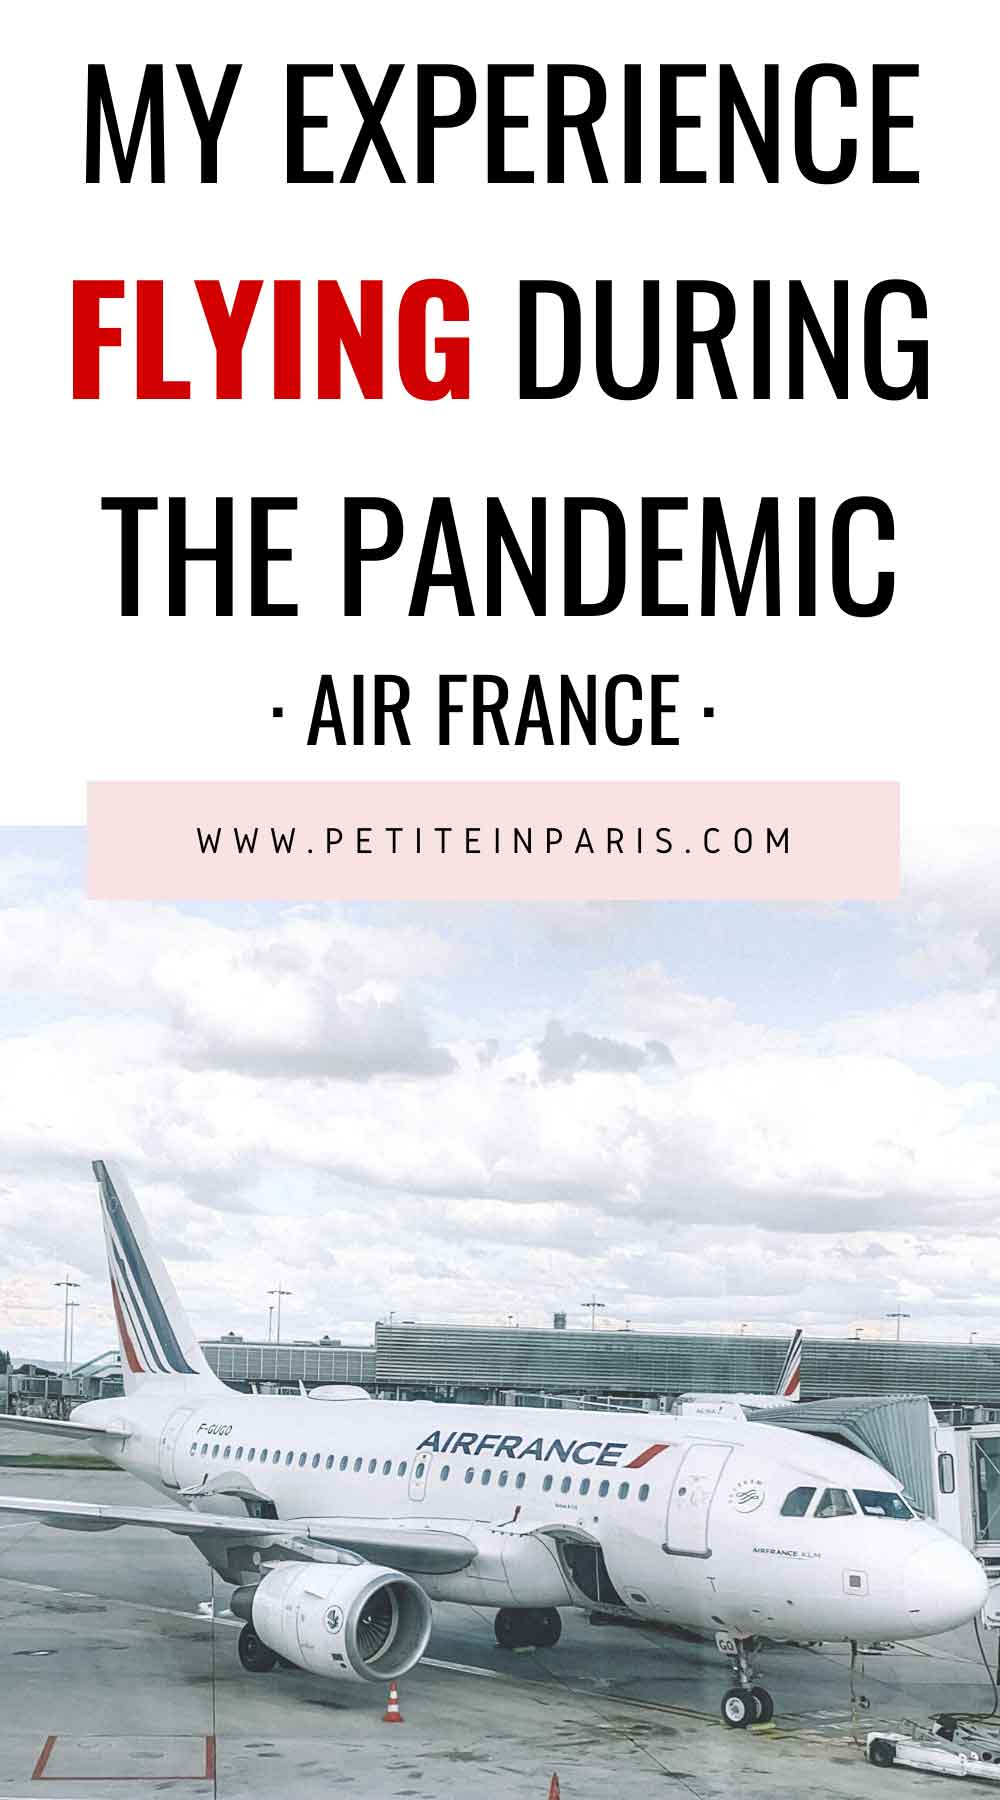 flying on airfrance during pandemic